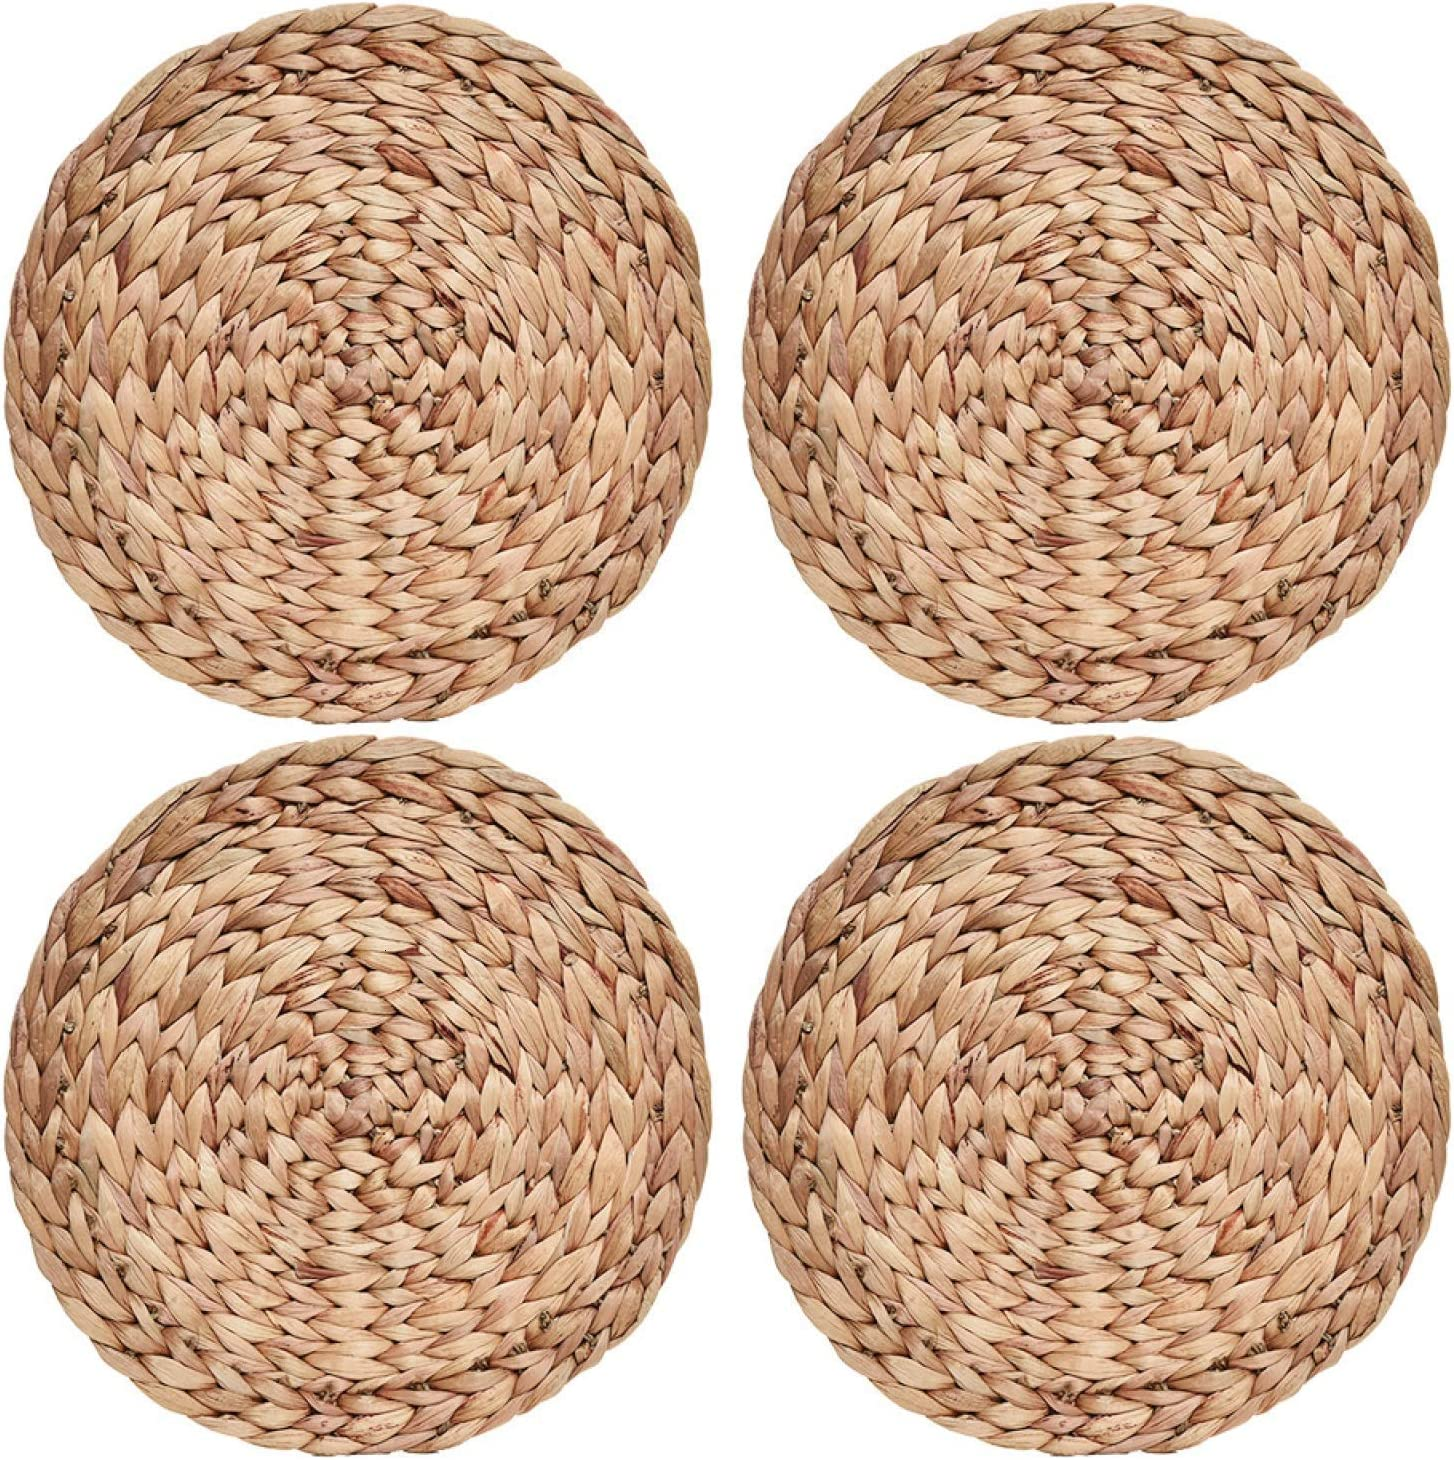 Table Mats Woven Placemats Water Hyacinth Wicker Placemats Seagrass Placemats Placemats for Round Table Diameter 11.8 Inches Round Placemats for Dining Table Round Placemats Set of 8